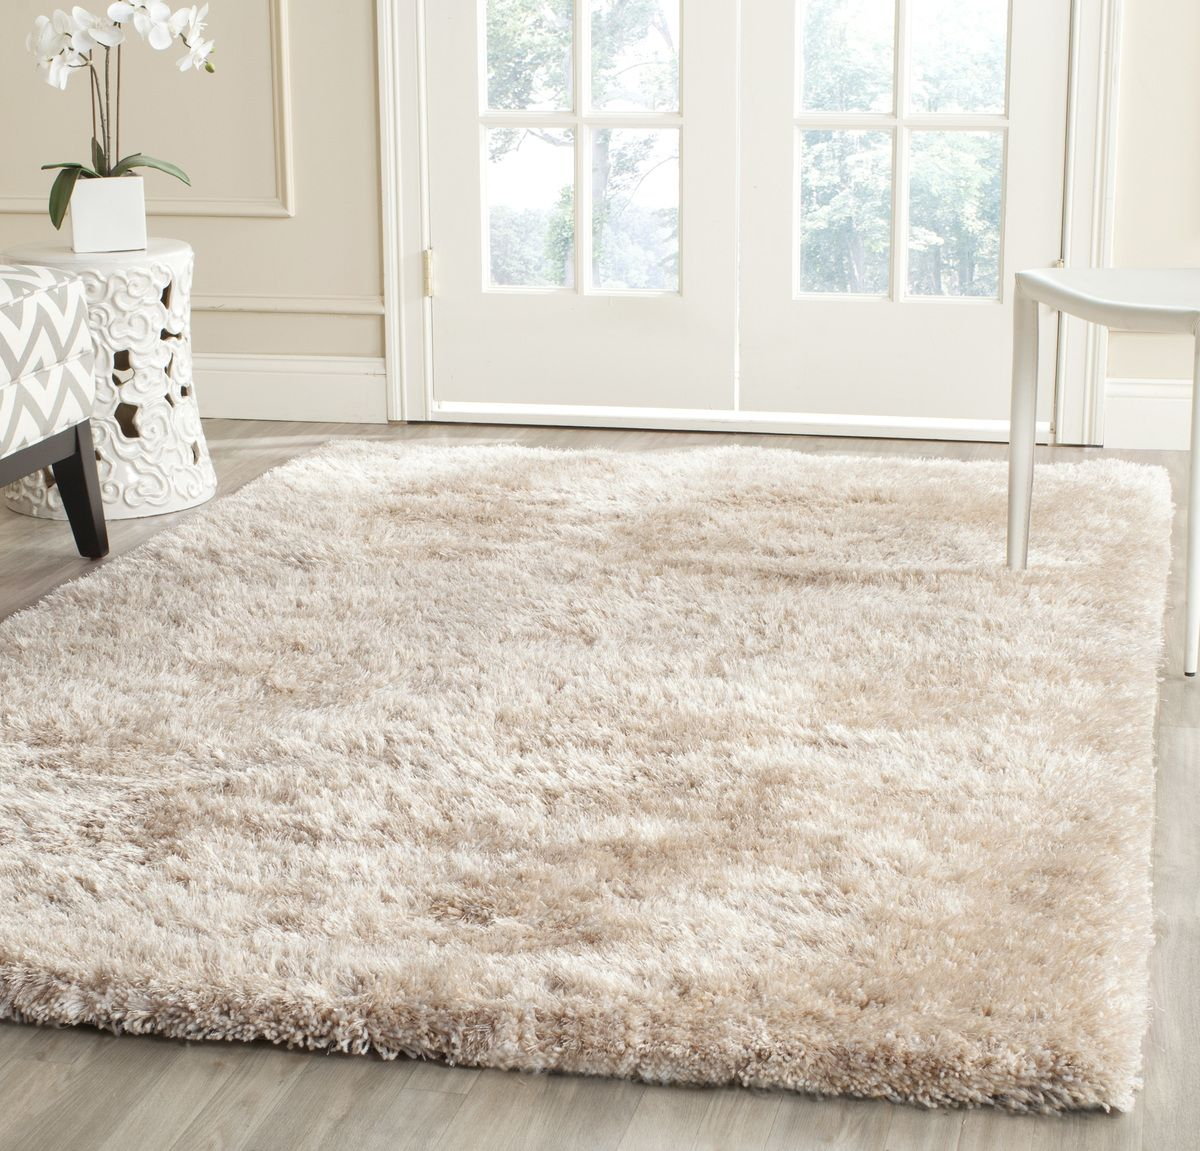 Beautiful Creamy Colors In This Shag Safavieh Martha Stewart Shag Msr0562c Rug Plushrugs Com With Images Shag Area Rug Area Rugs Rugs